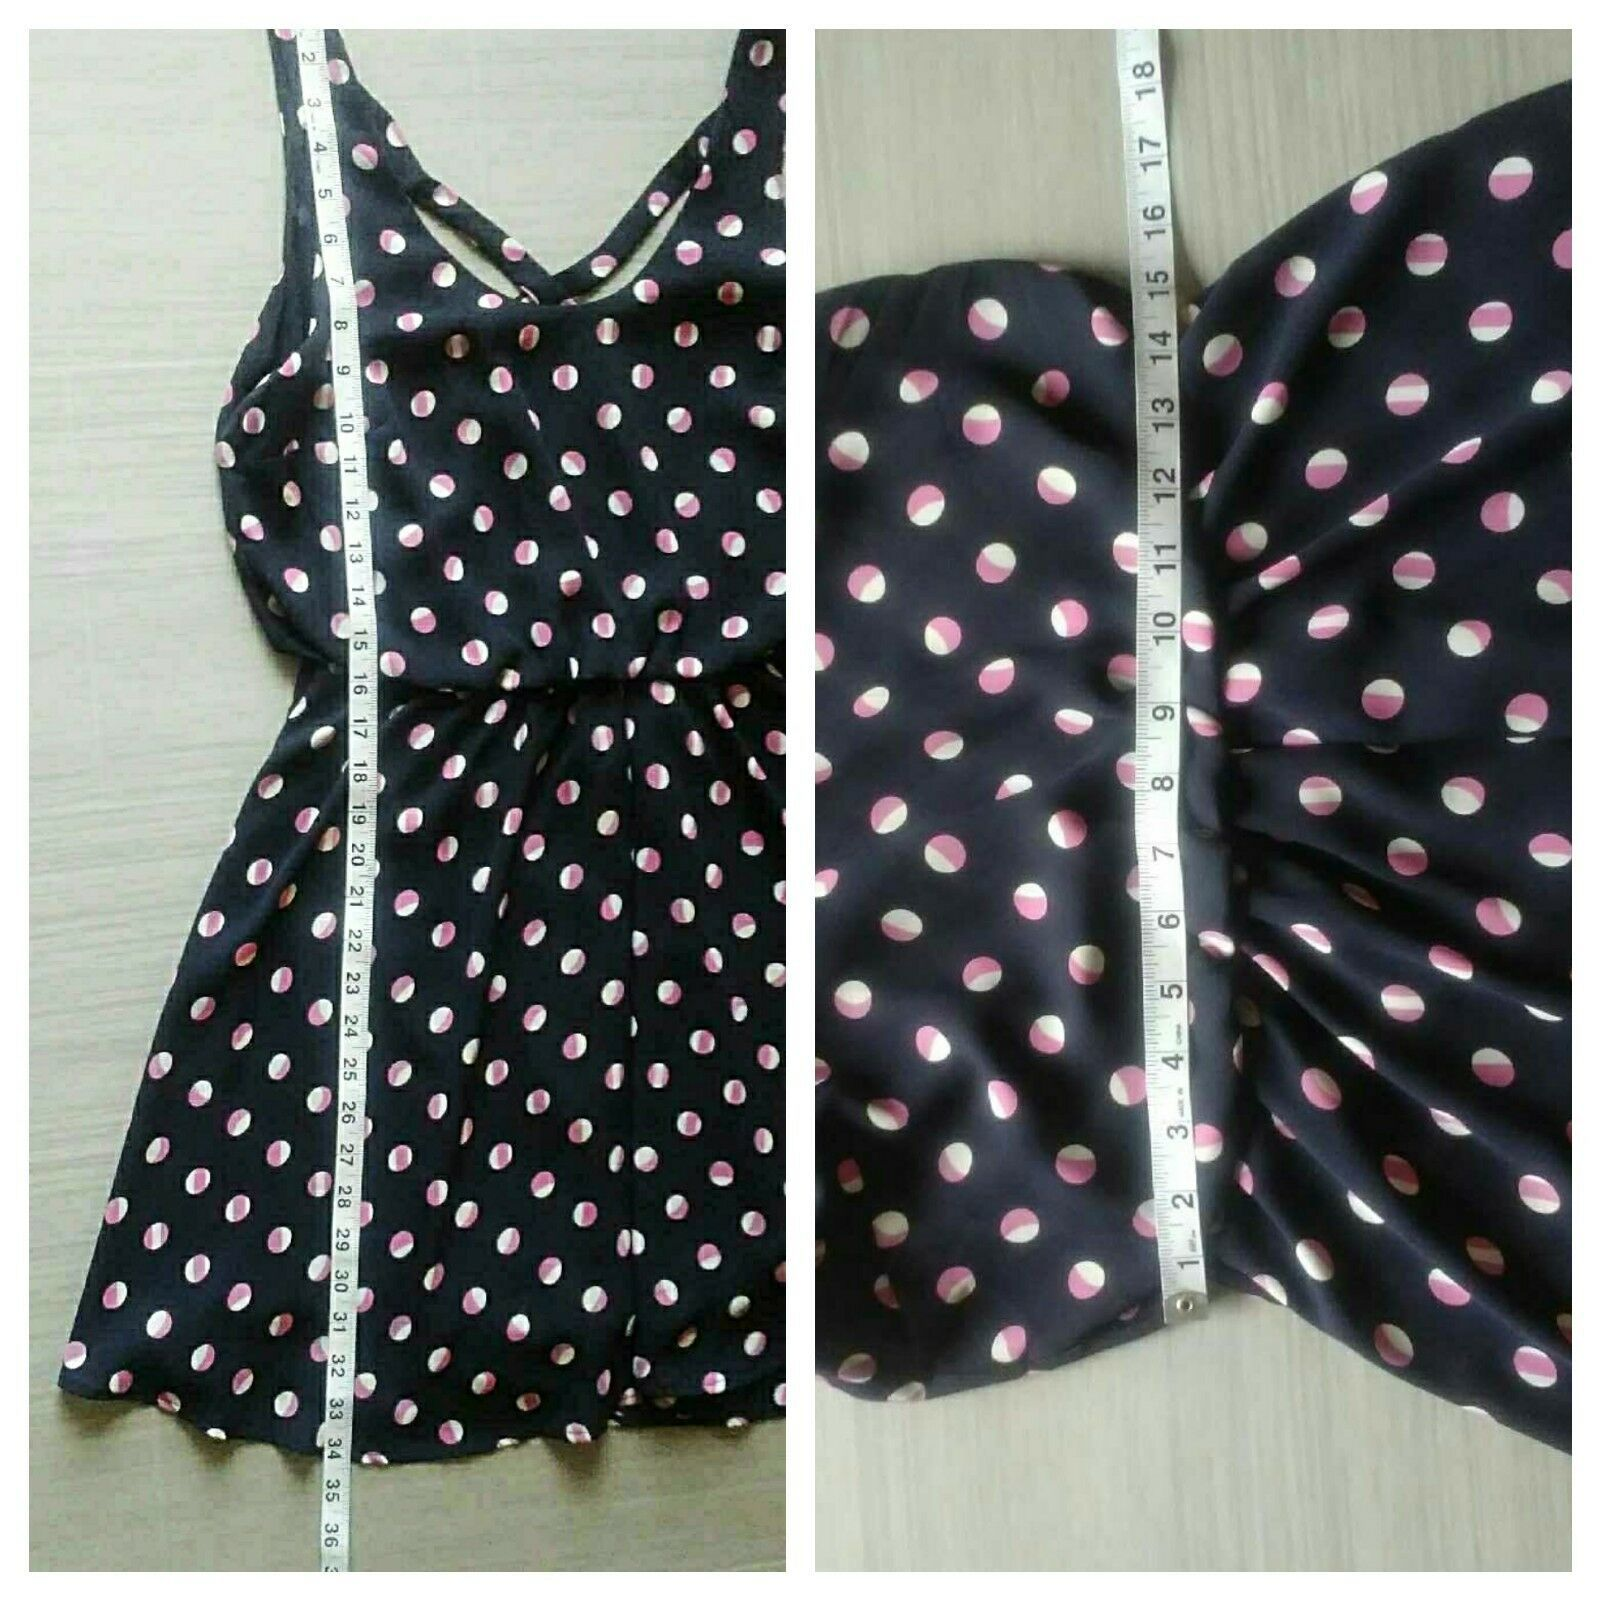 Lush Women's Navy with Pink & White Polka Dots Dress Size M Lined Sleeveless